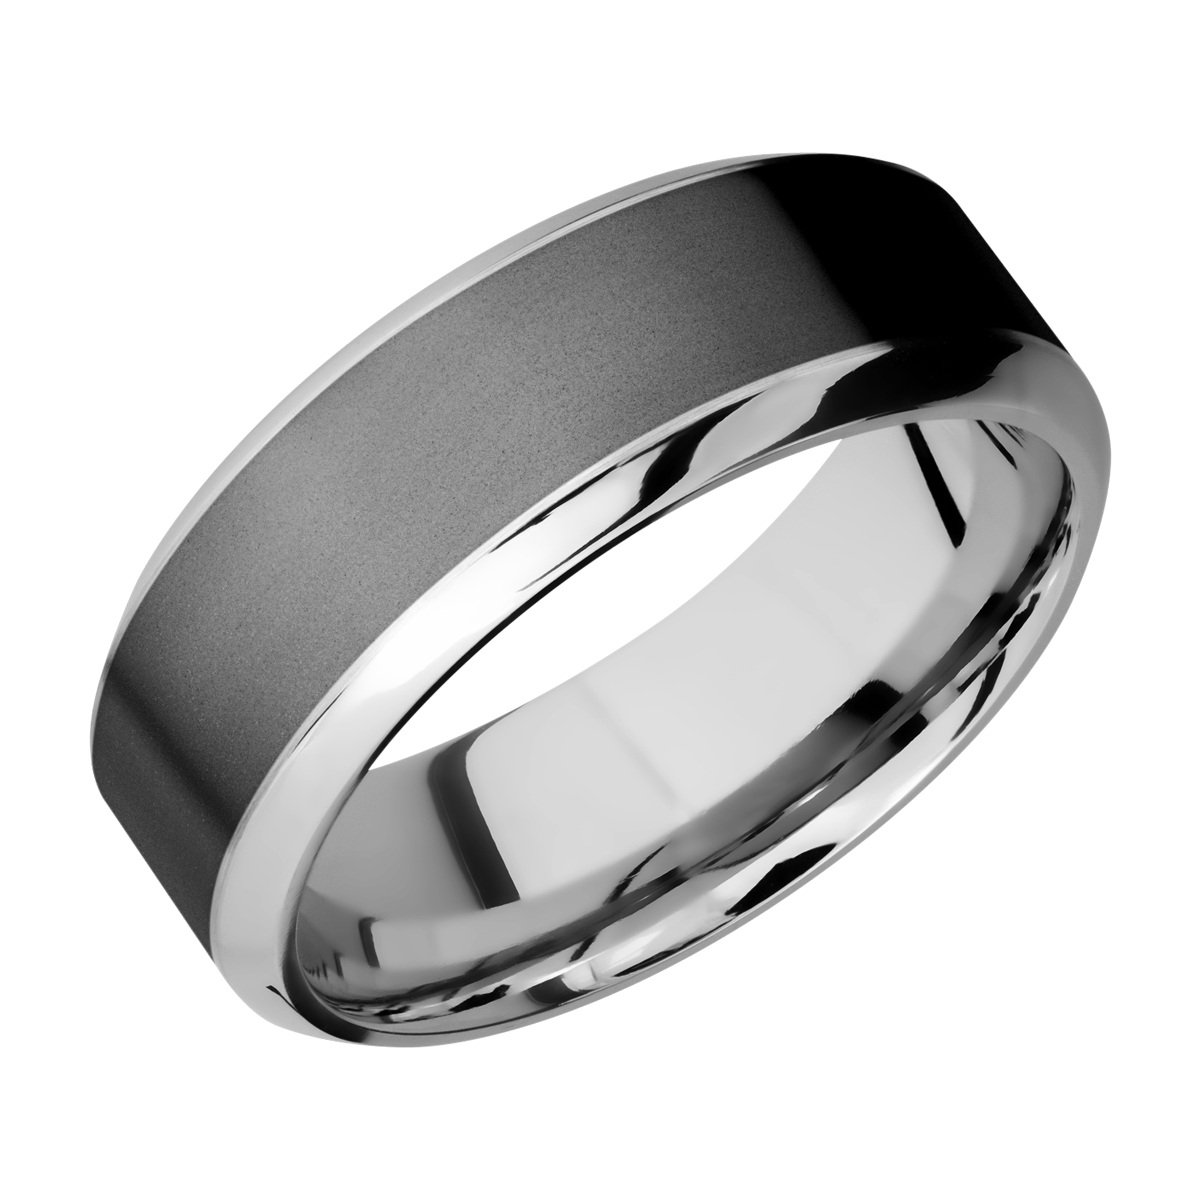 Lashbrook CCPF8HB15/ZIRCONIUM Cobalt Chrome Wedding Ring or Band